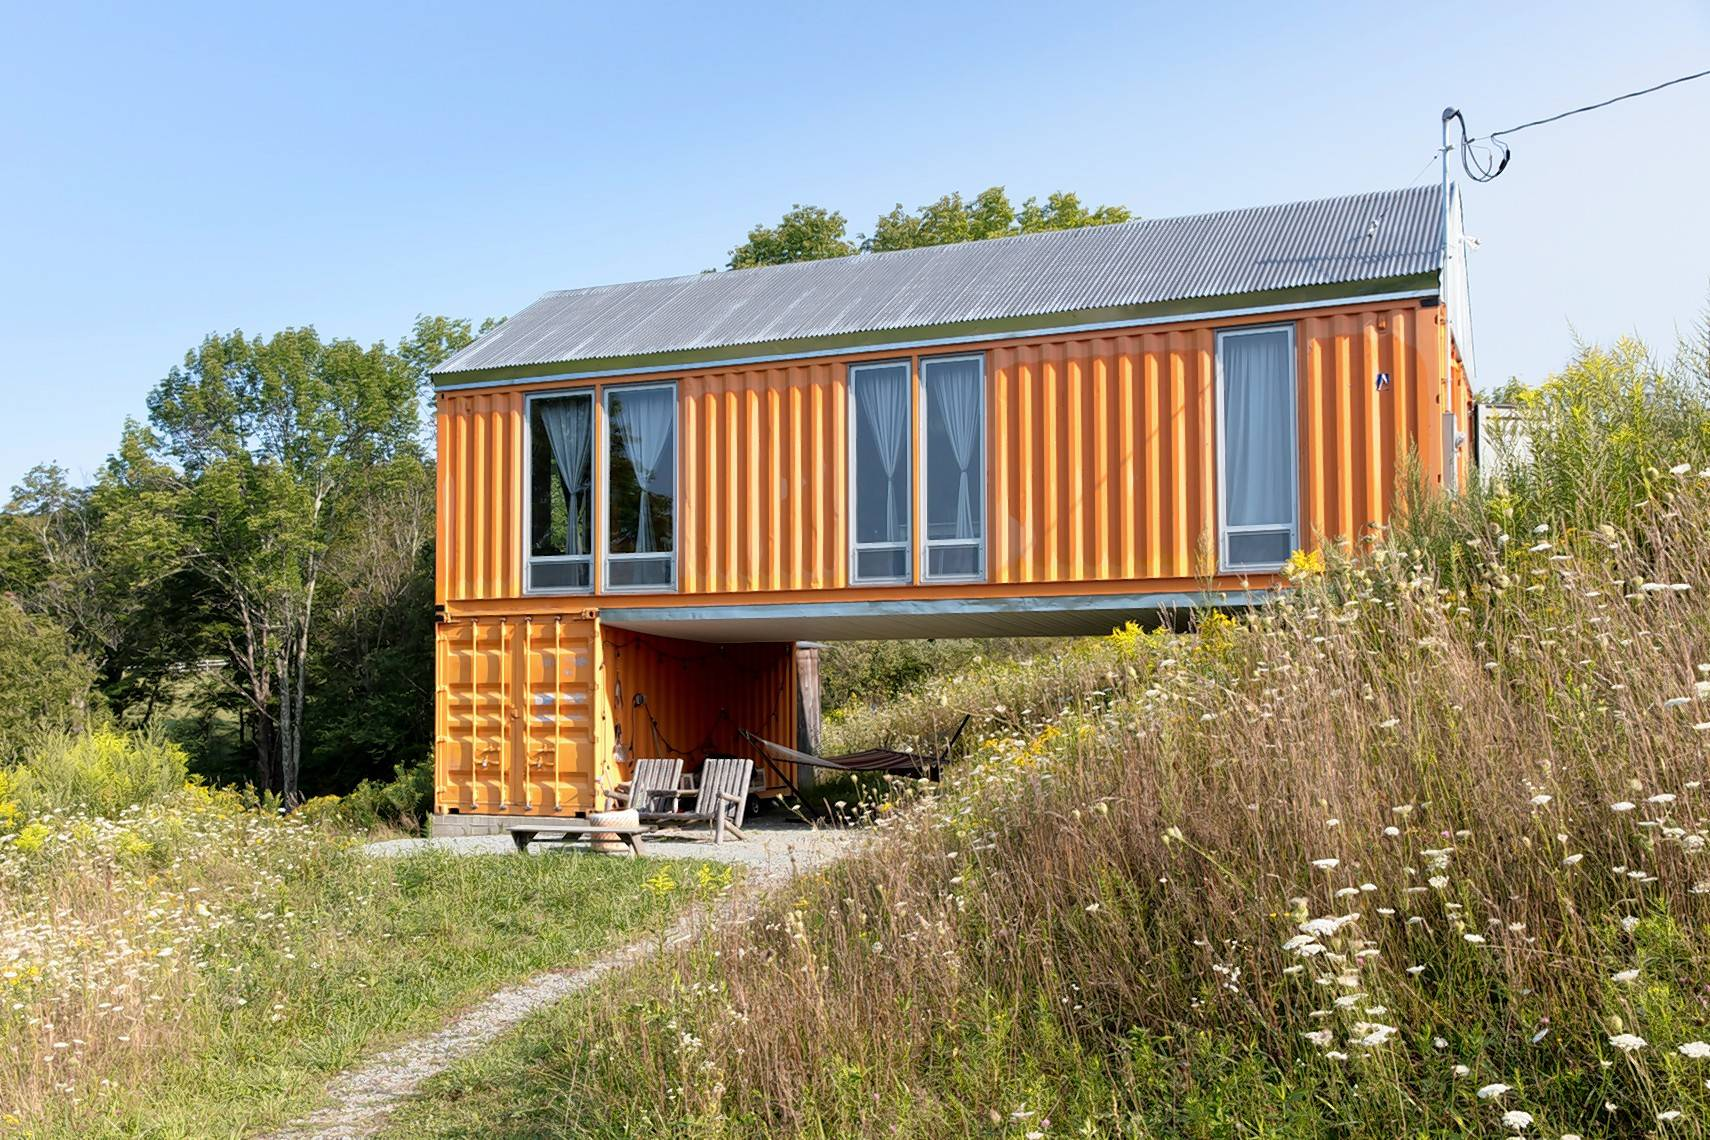 This home, made using steel shipping containers, was designed and built by Steele House along with Bigprototype in Livingston Manor, New York.